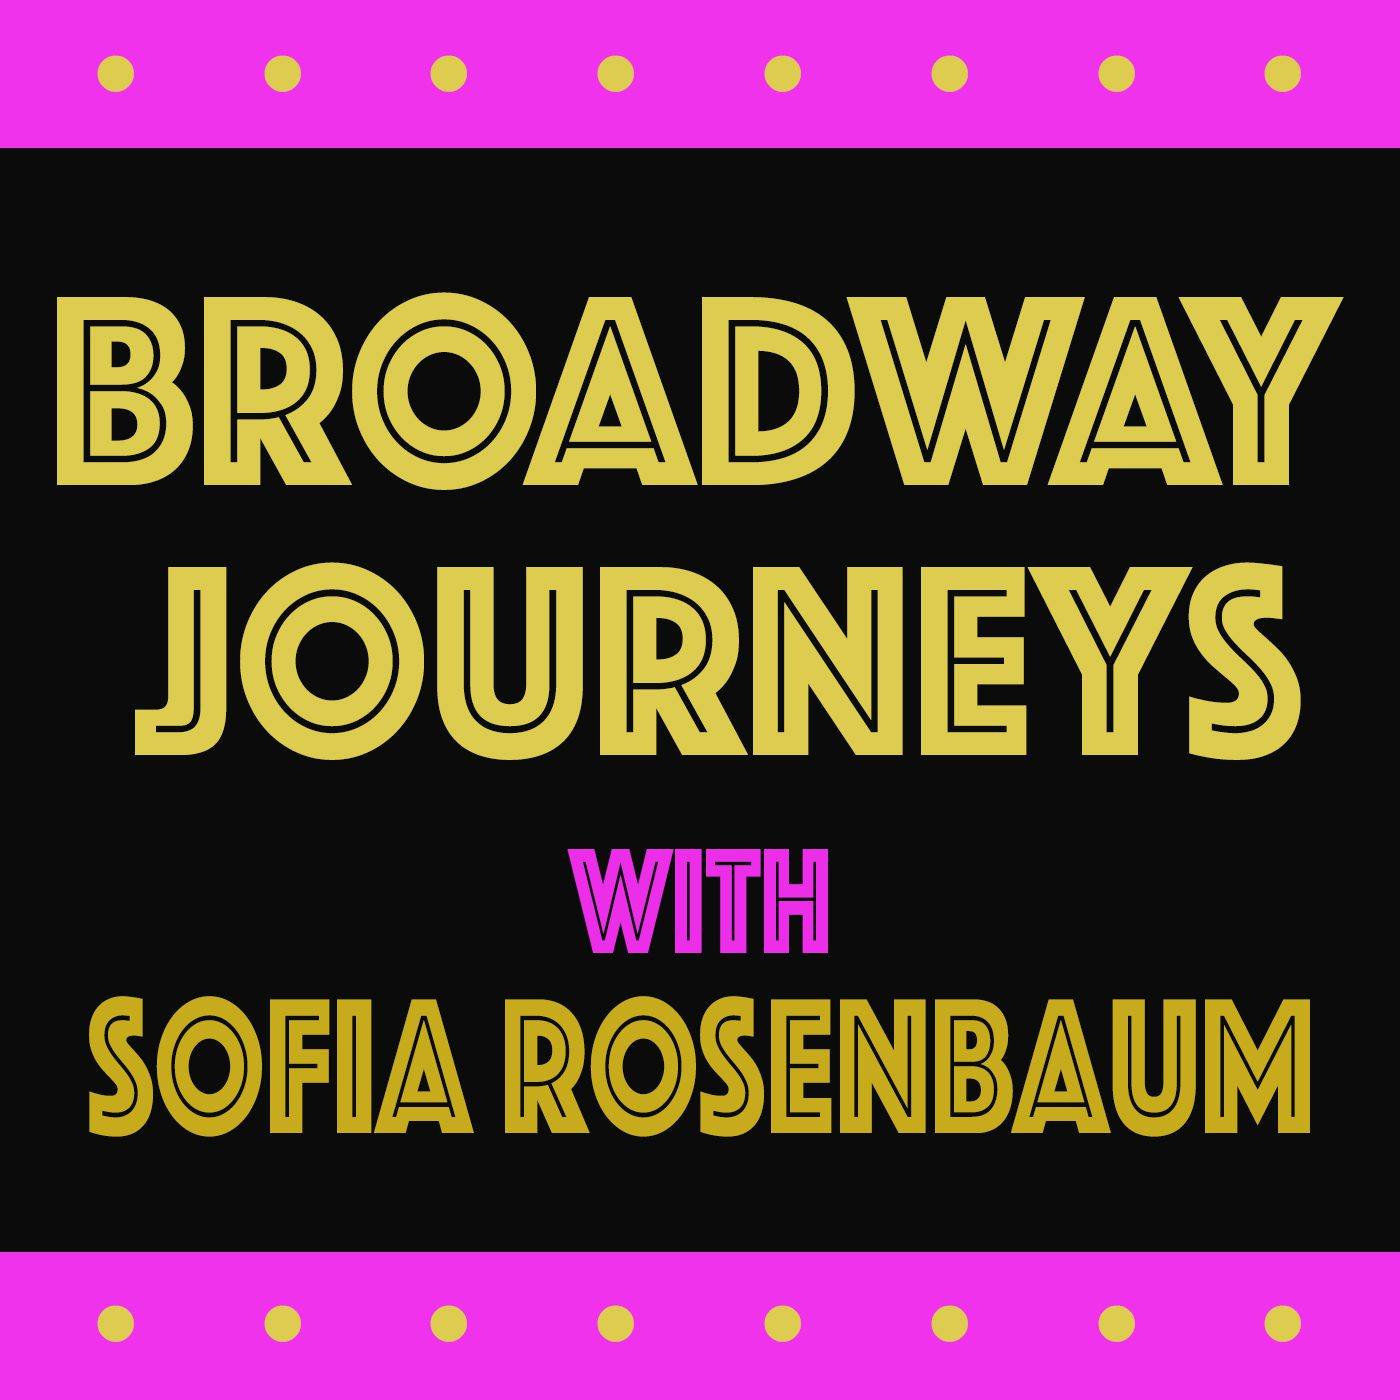 Broadway Journeys